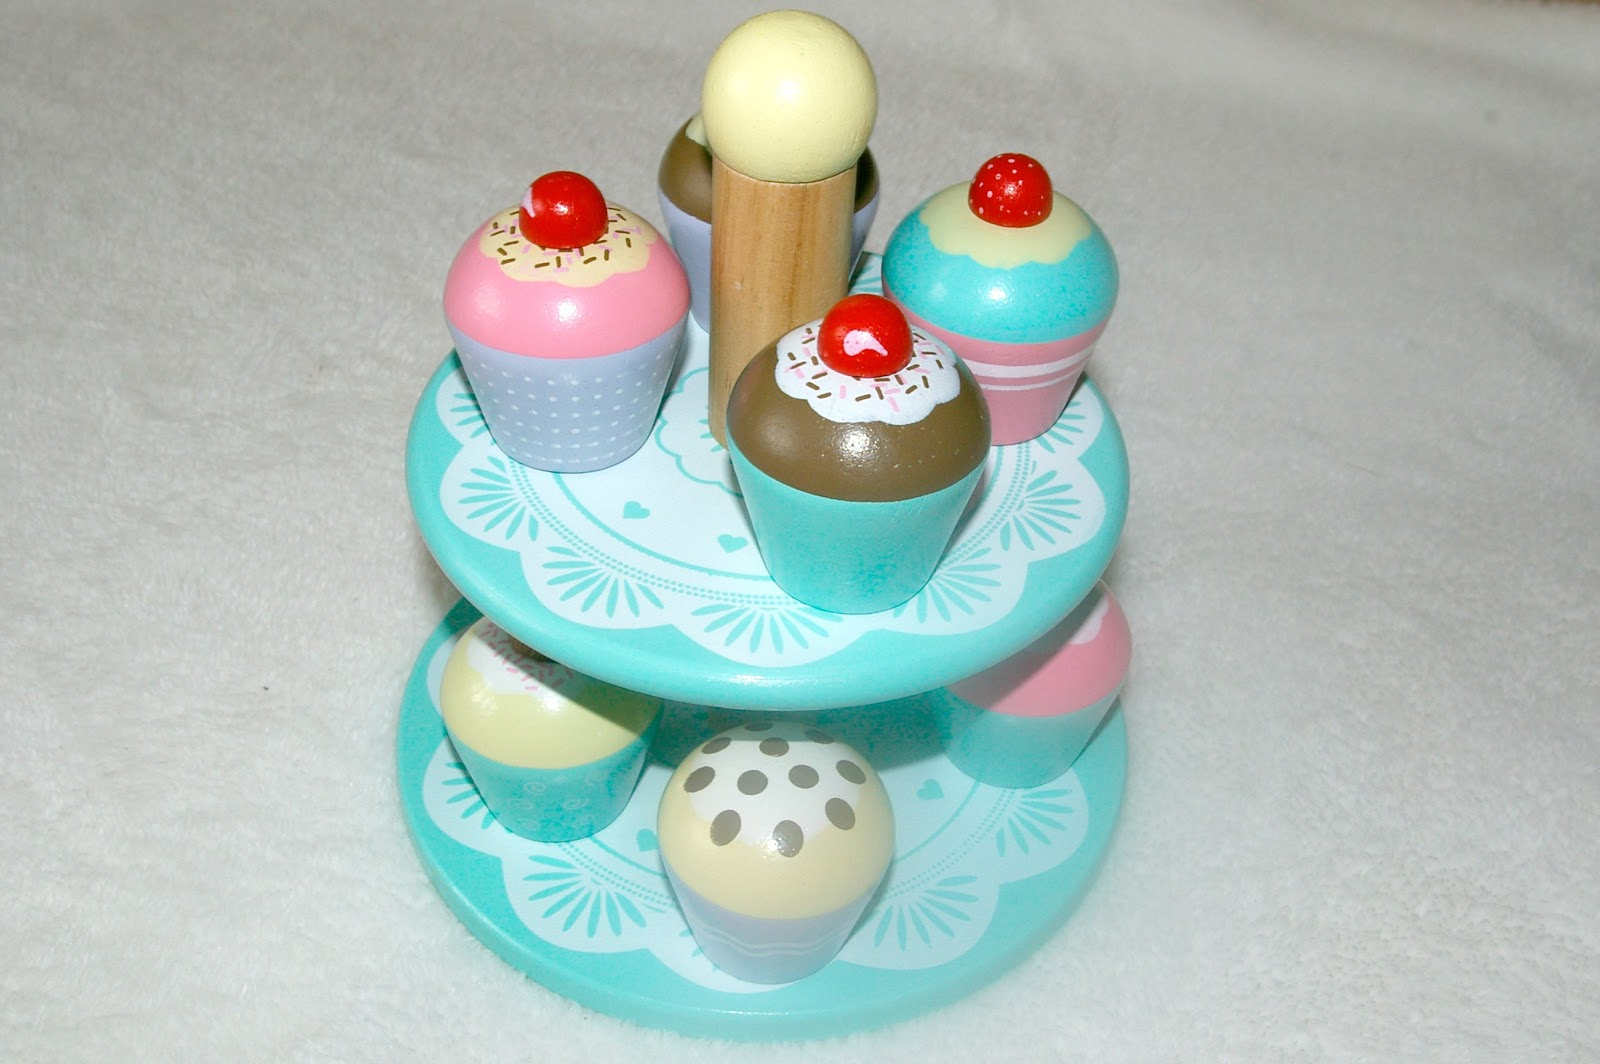 Wooden cupcake stand from the Great Little Trading Company